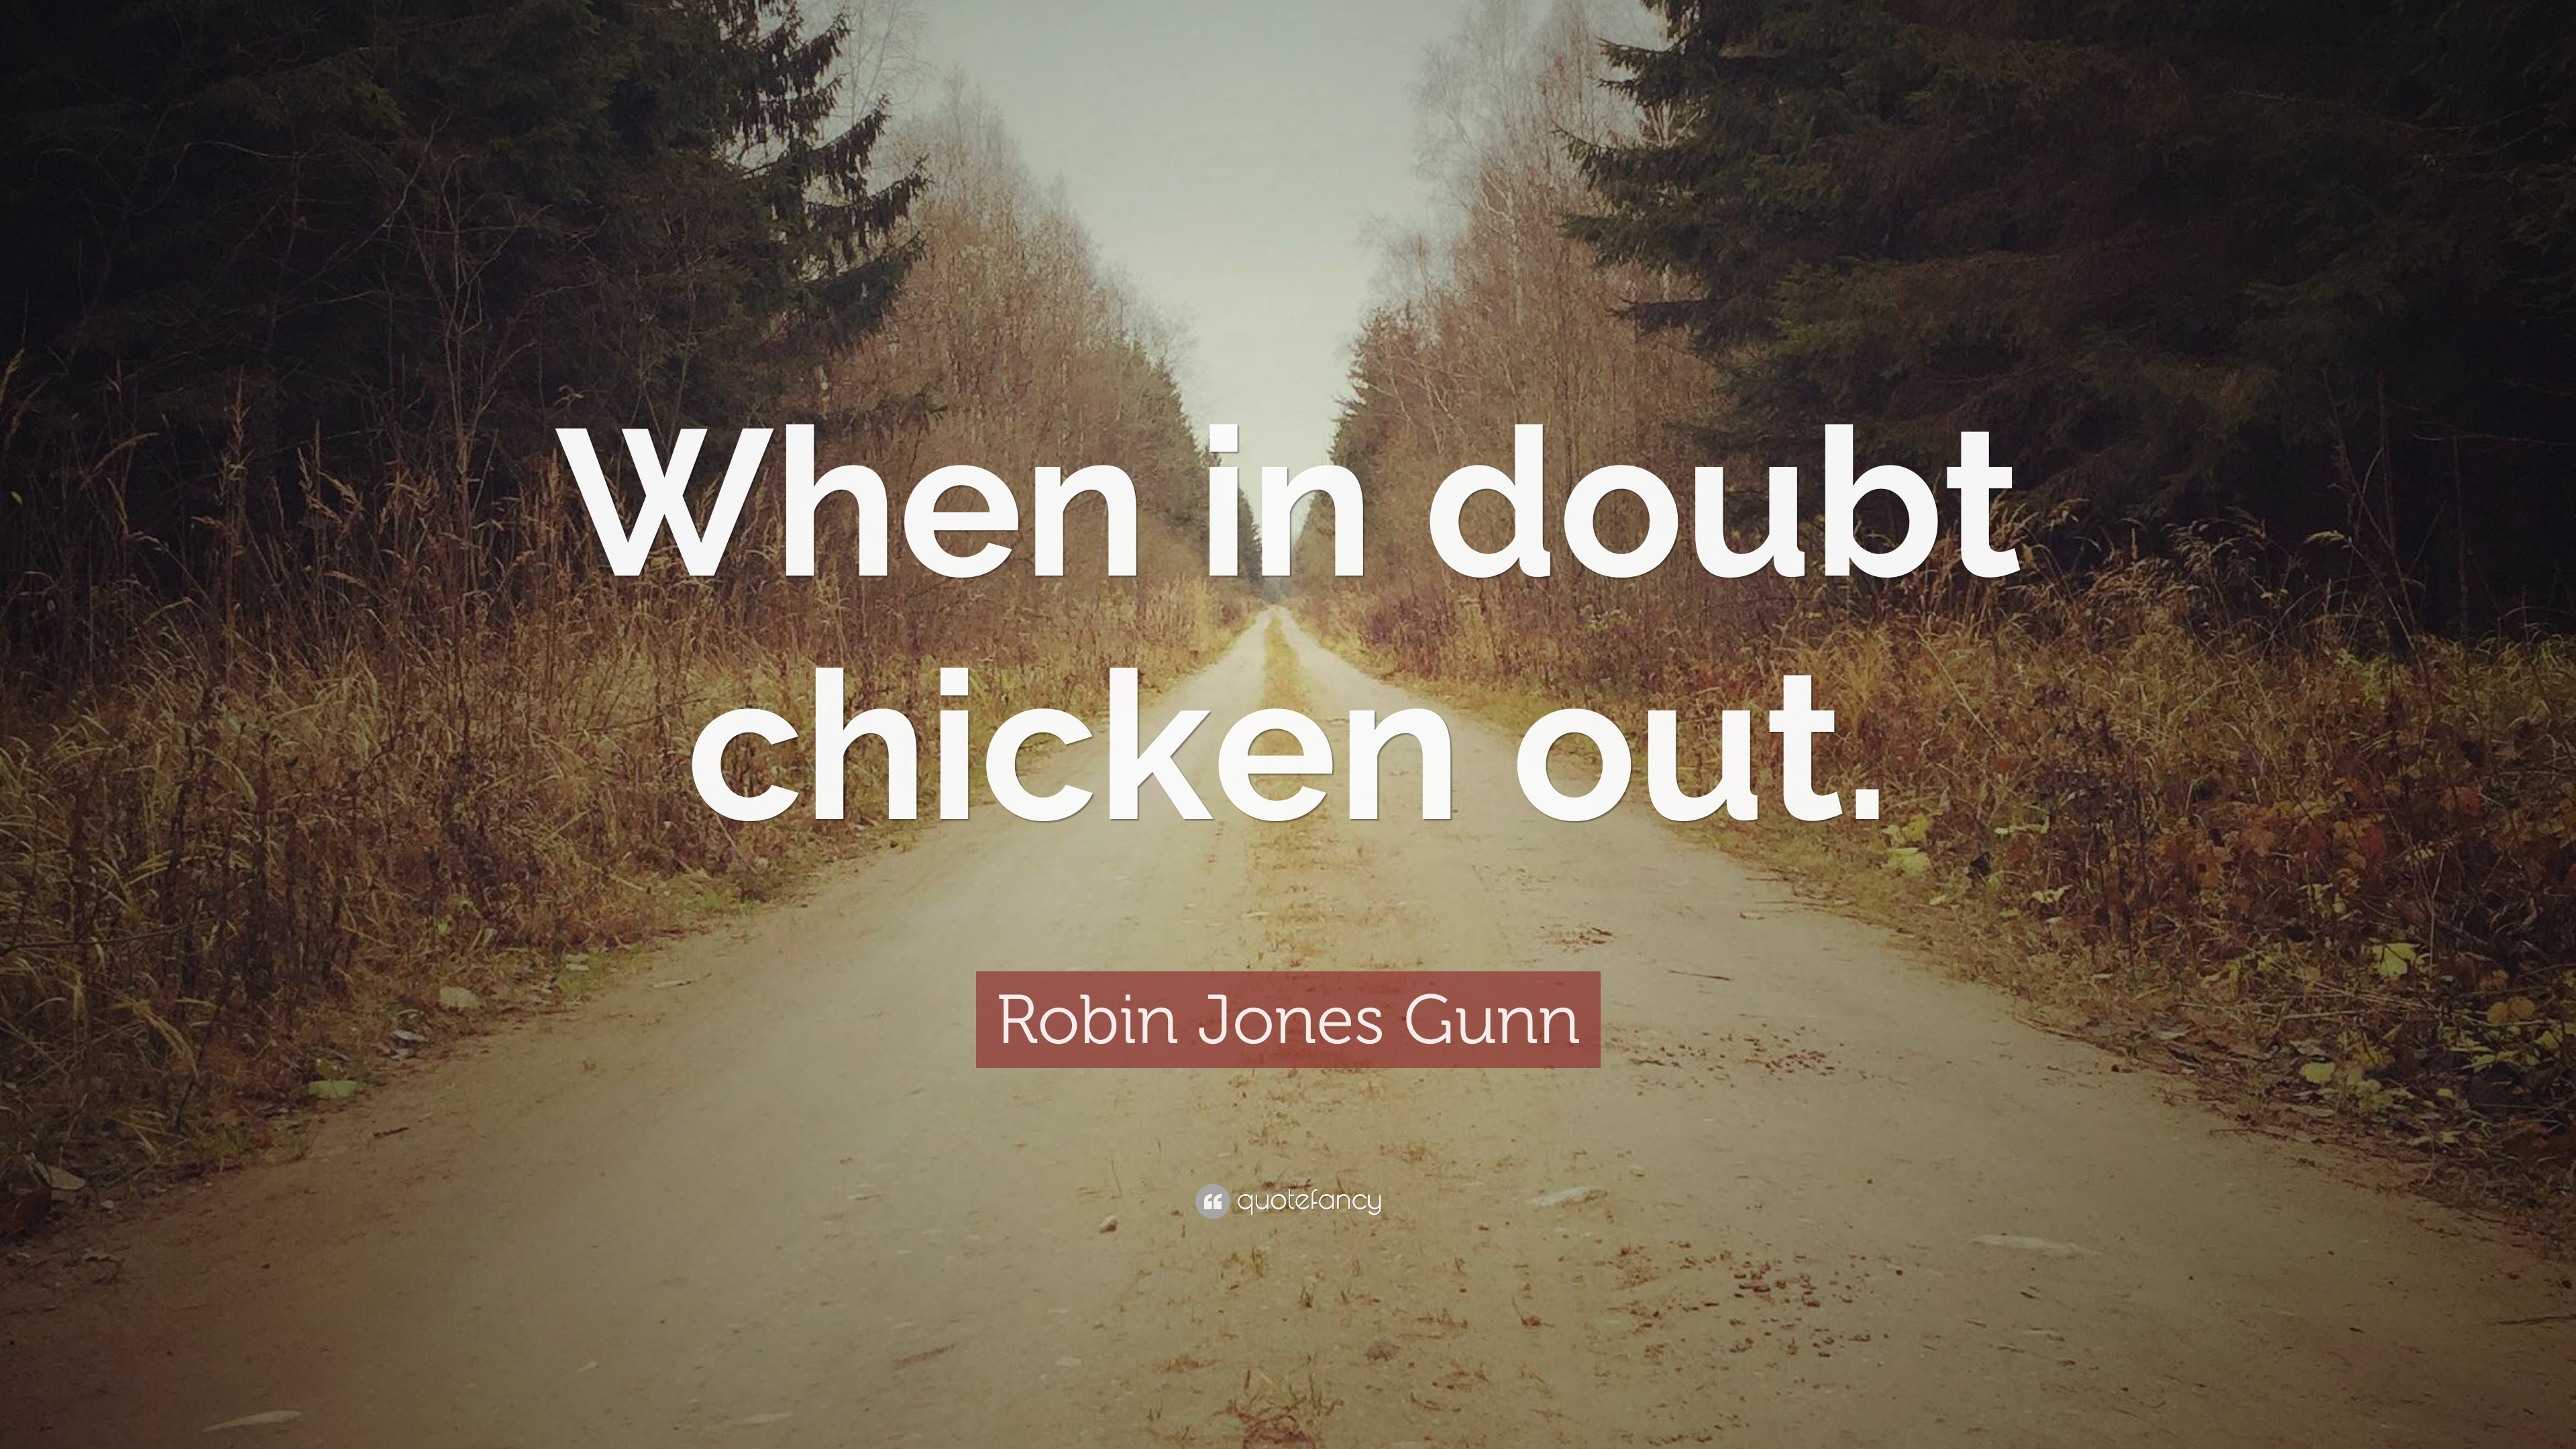 Chickens Good Quotes: Robin Jones Gunn Quotes (24 Wallpapers)